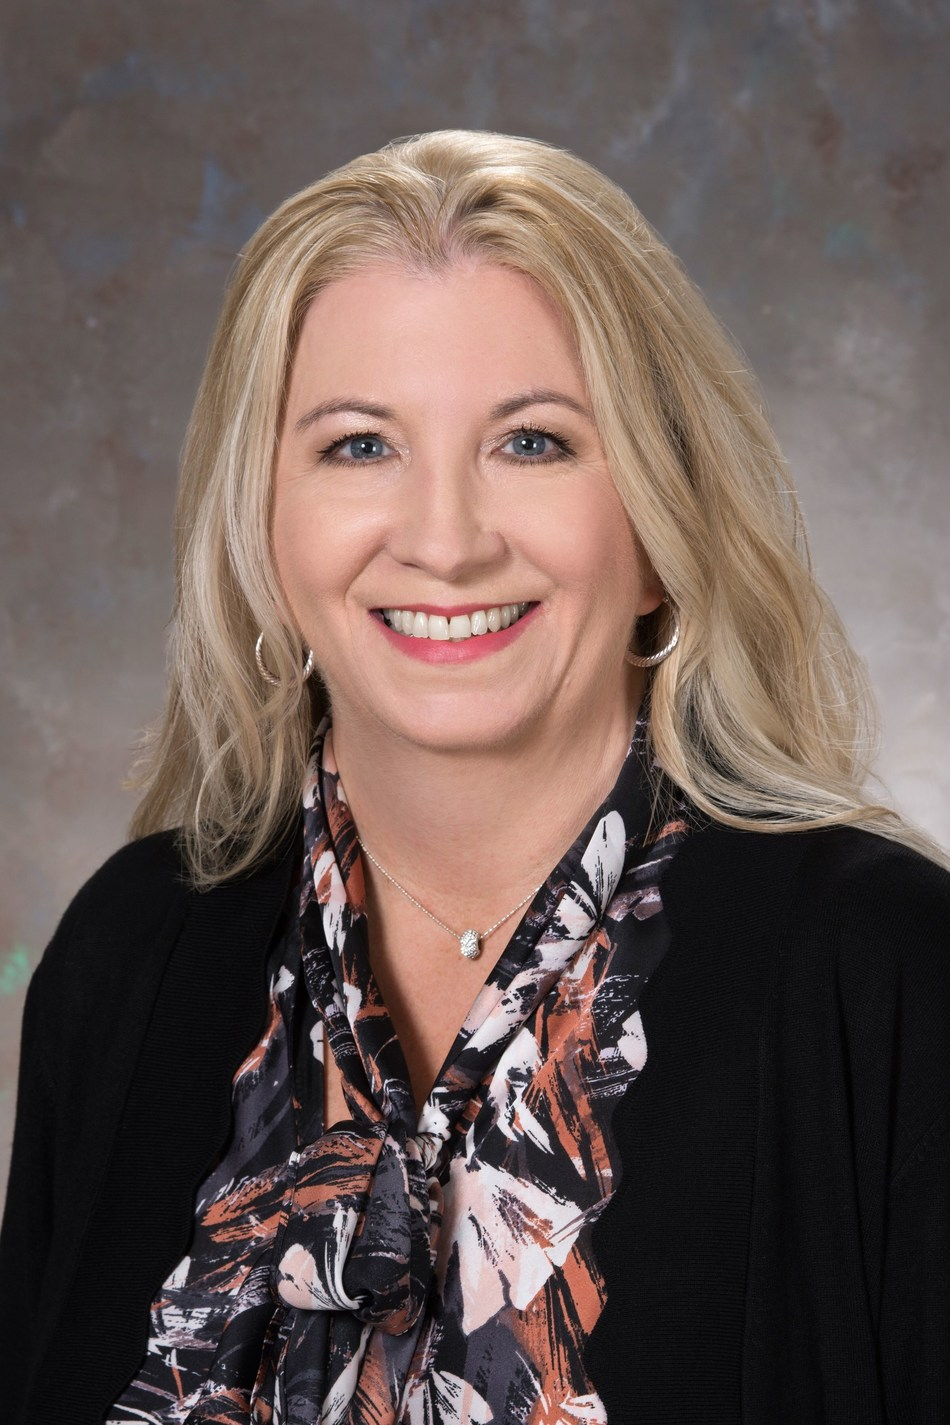 Watercrest Senior Living Group proudly welcomes Leisa Cawthon as Executive Director of Watercrest Newnan Assisted Living and Memory Care, opening this summer in Newnan, Georgia.